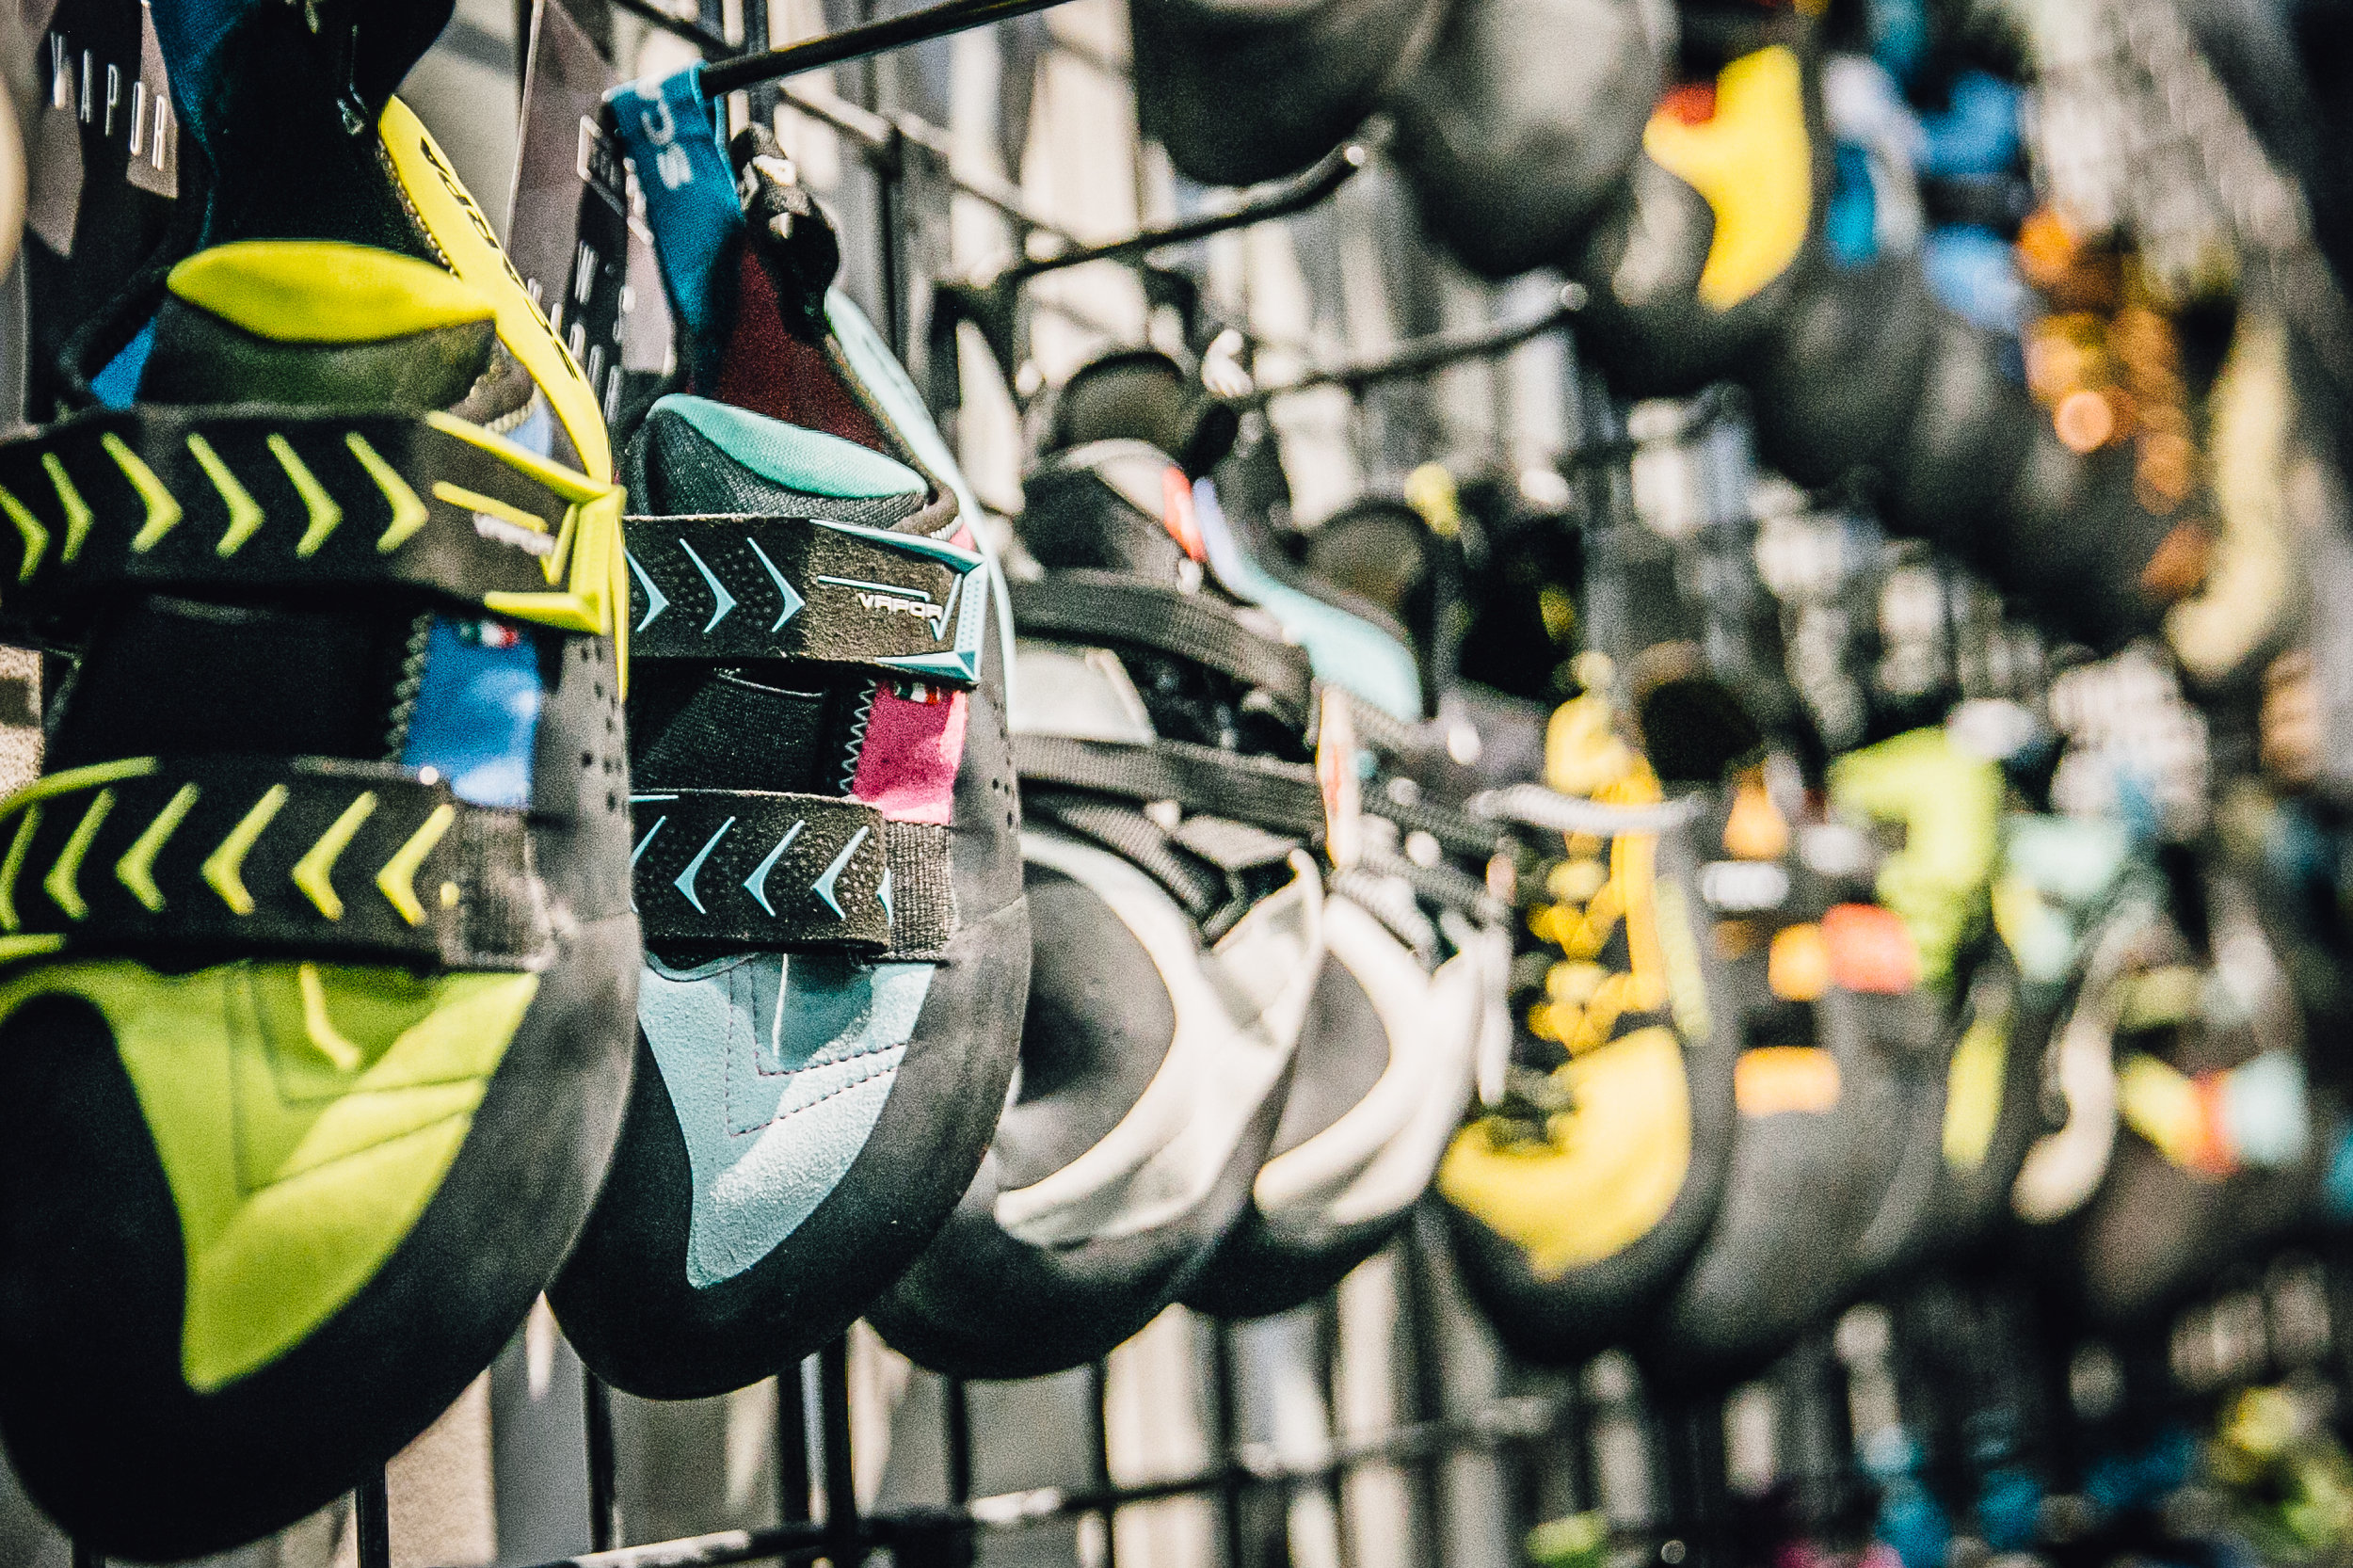 climbing shoes - Our gear shop is home to an extensive selection of climbing shoes. Whether you're particular about a brand, fit, or color, we'll get you into the pair of your dreams.ButoraFive TenLa SportivaScarpaTenaya